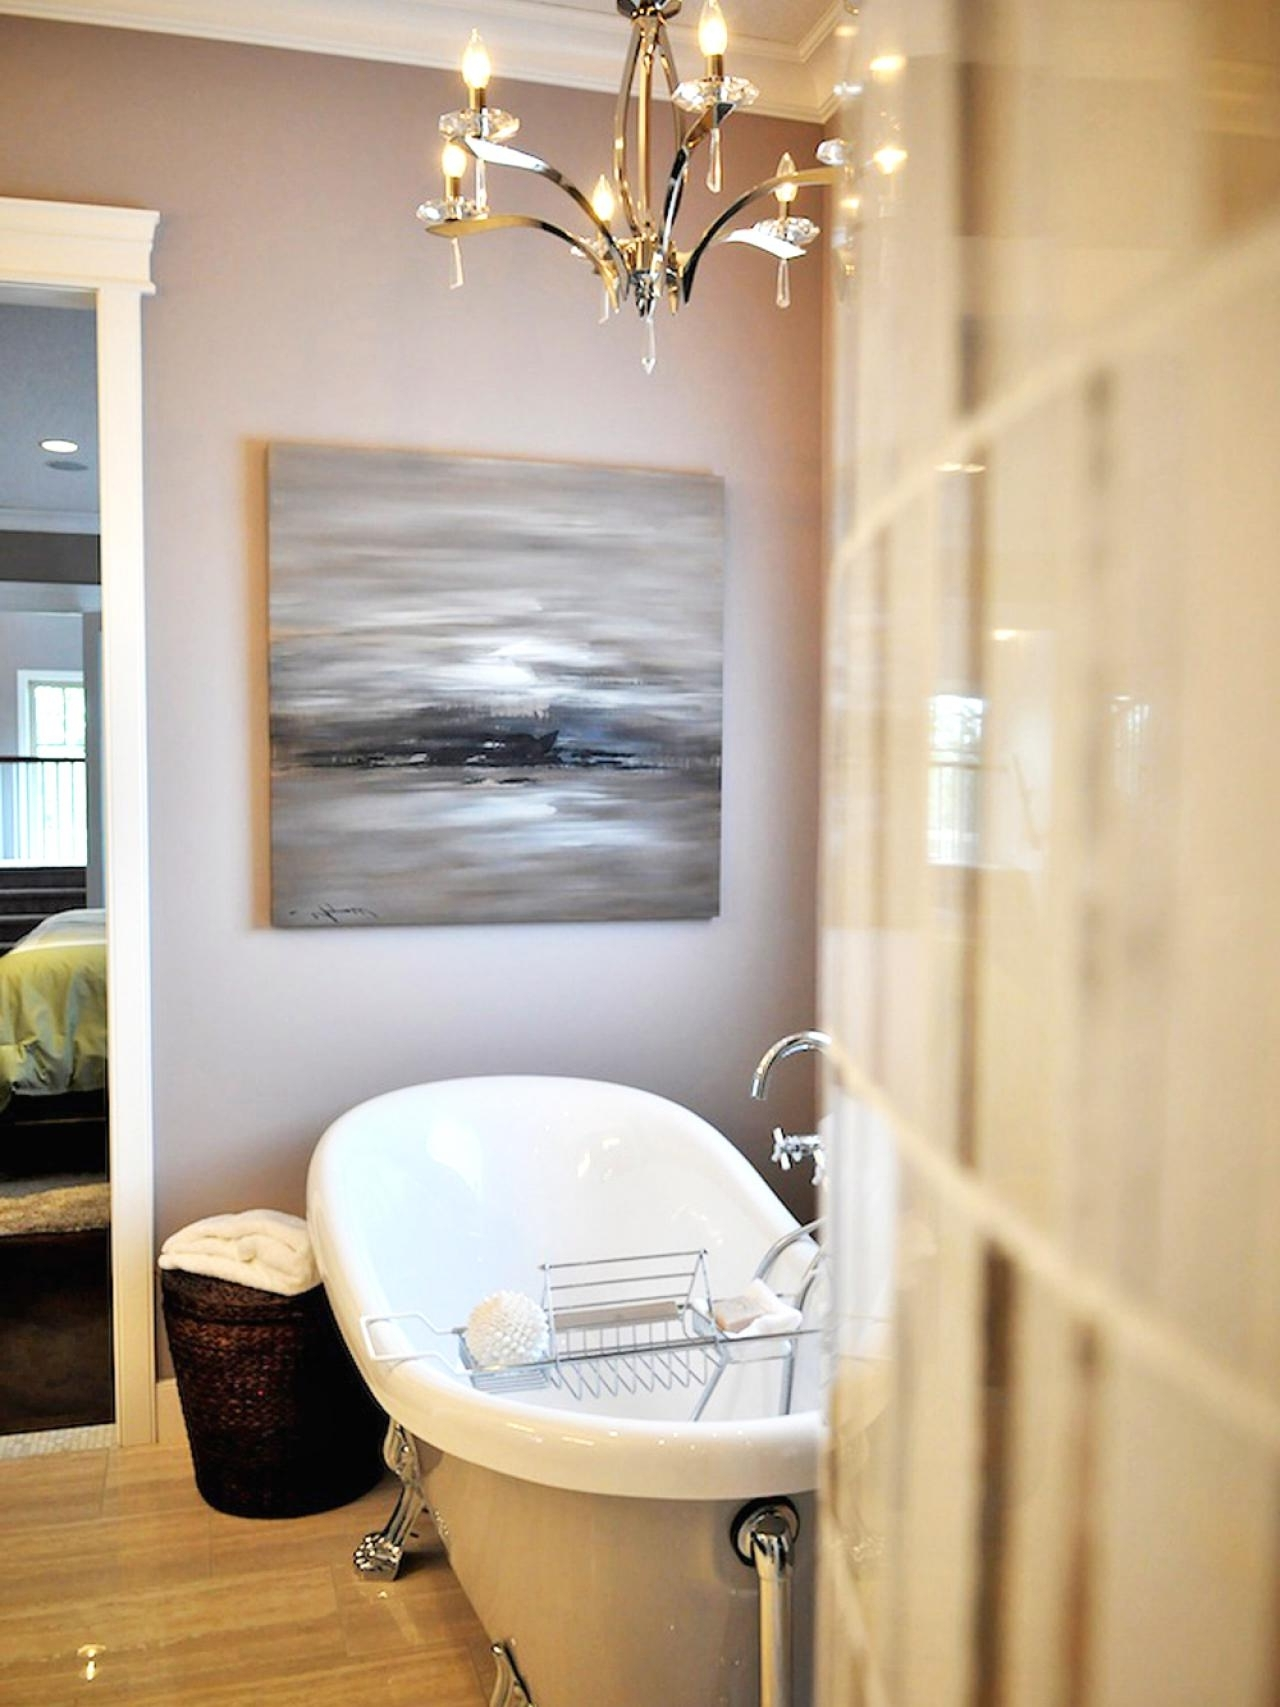 Crystal Chandelier Bathroom Lighting Throughout Popular Bathroom Lighting Fixtures (View 15 of 20)